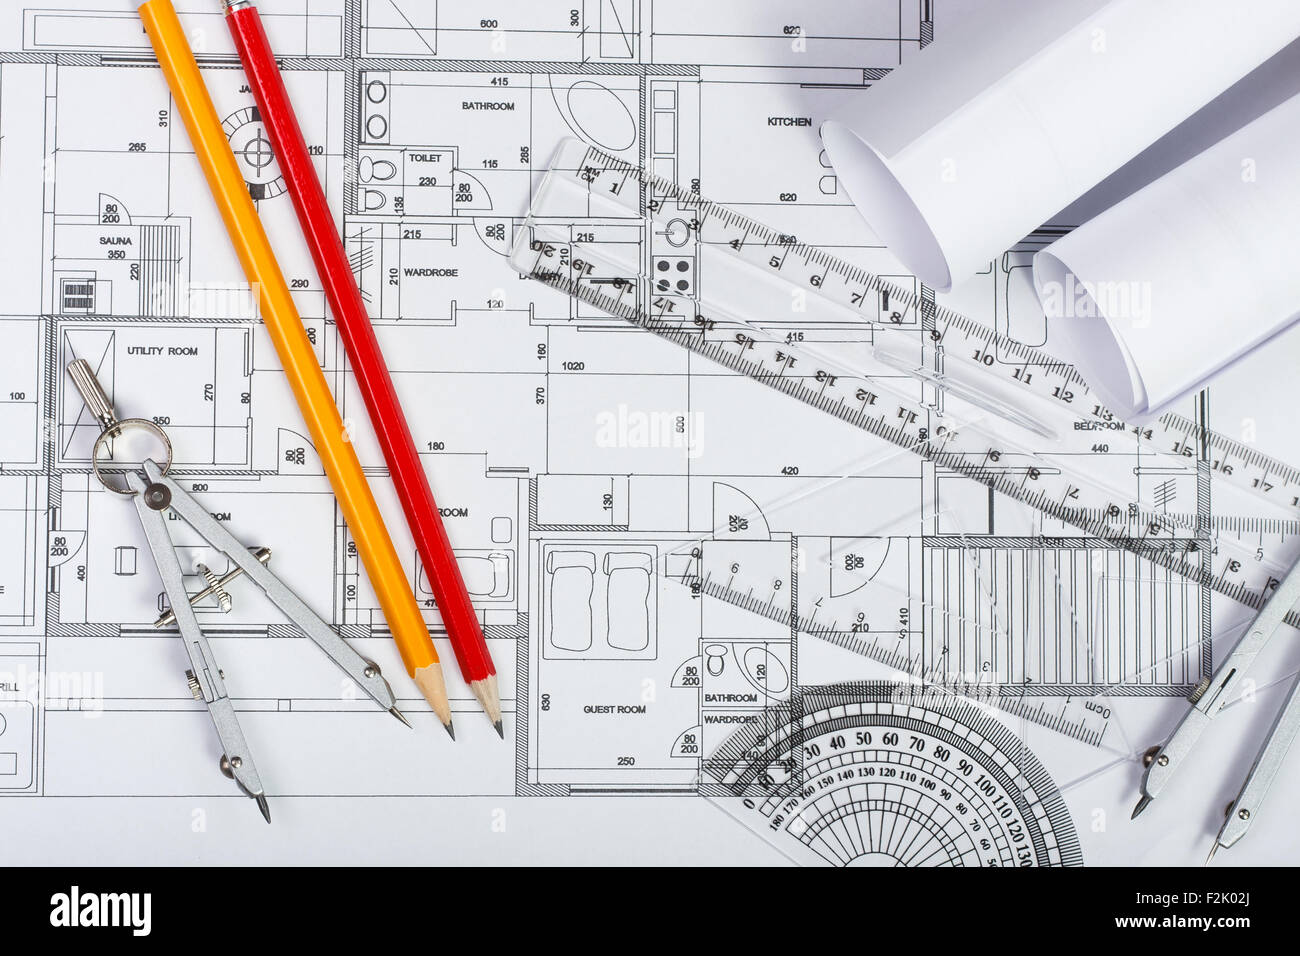 Architectural plans, pencils and ruler - Stock Image